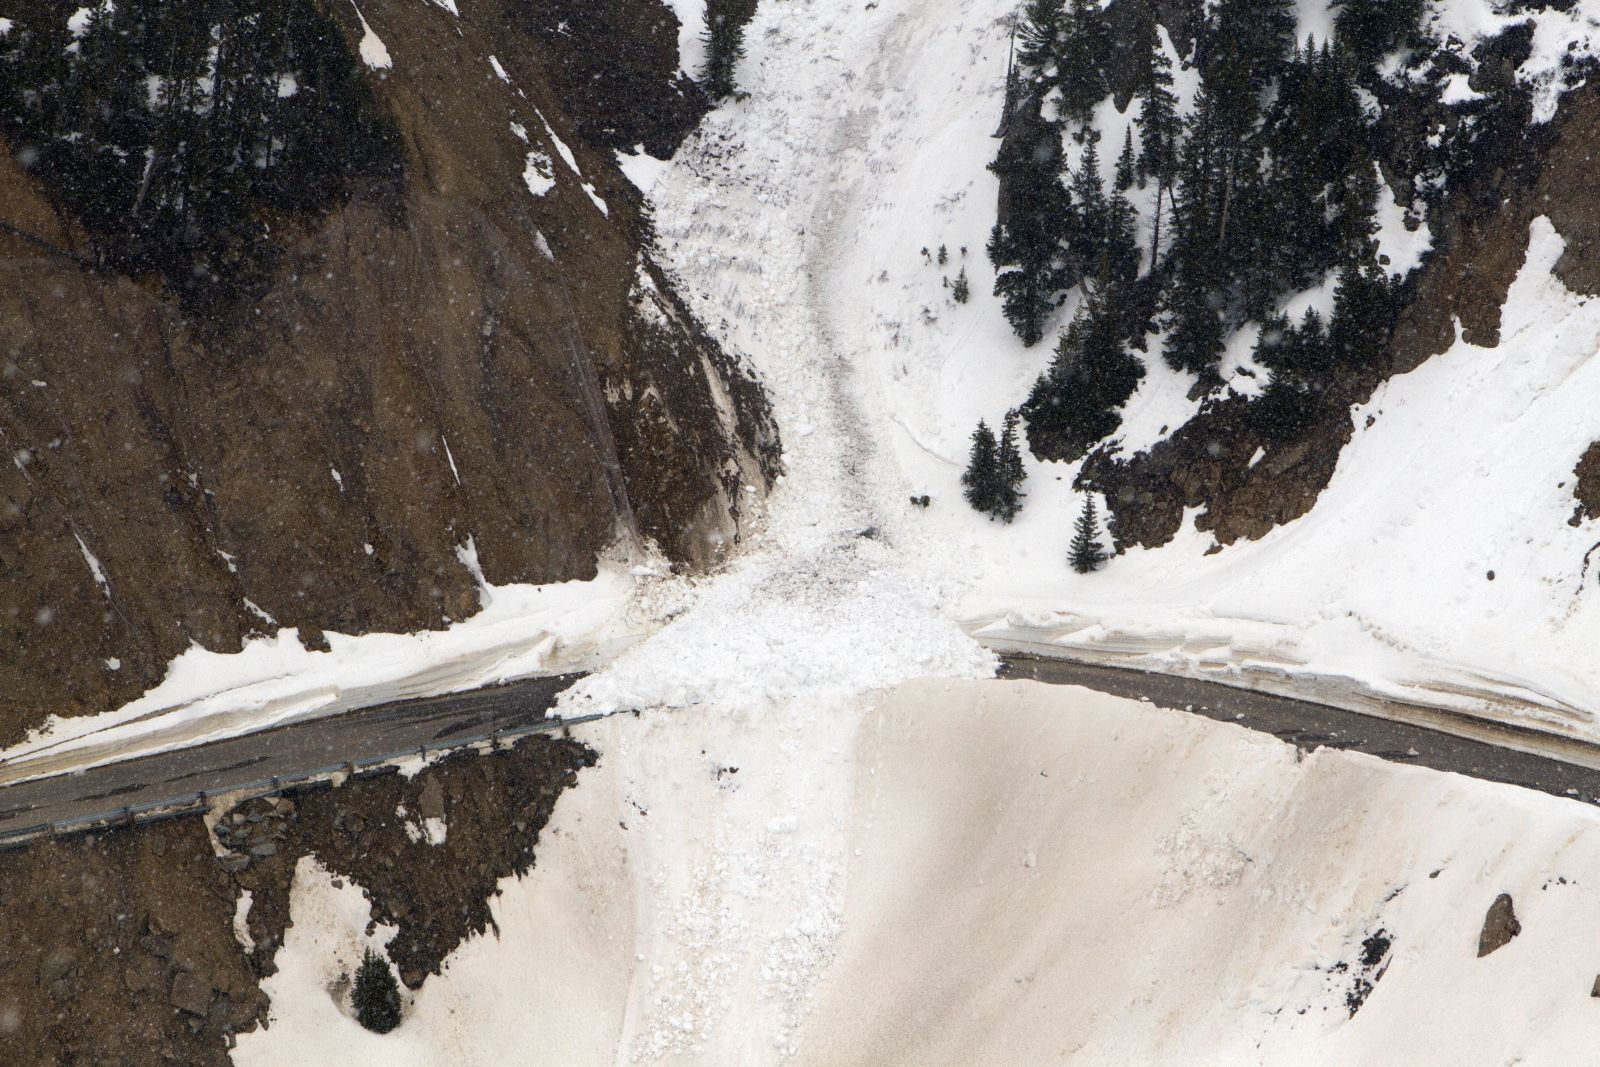 Photograph of a detonated avalanche, designed to prevent larger more destructive avalanches